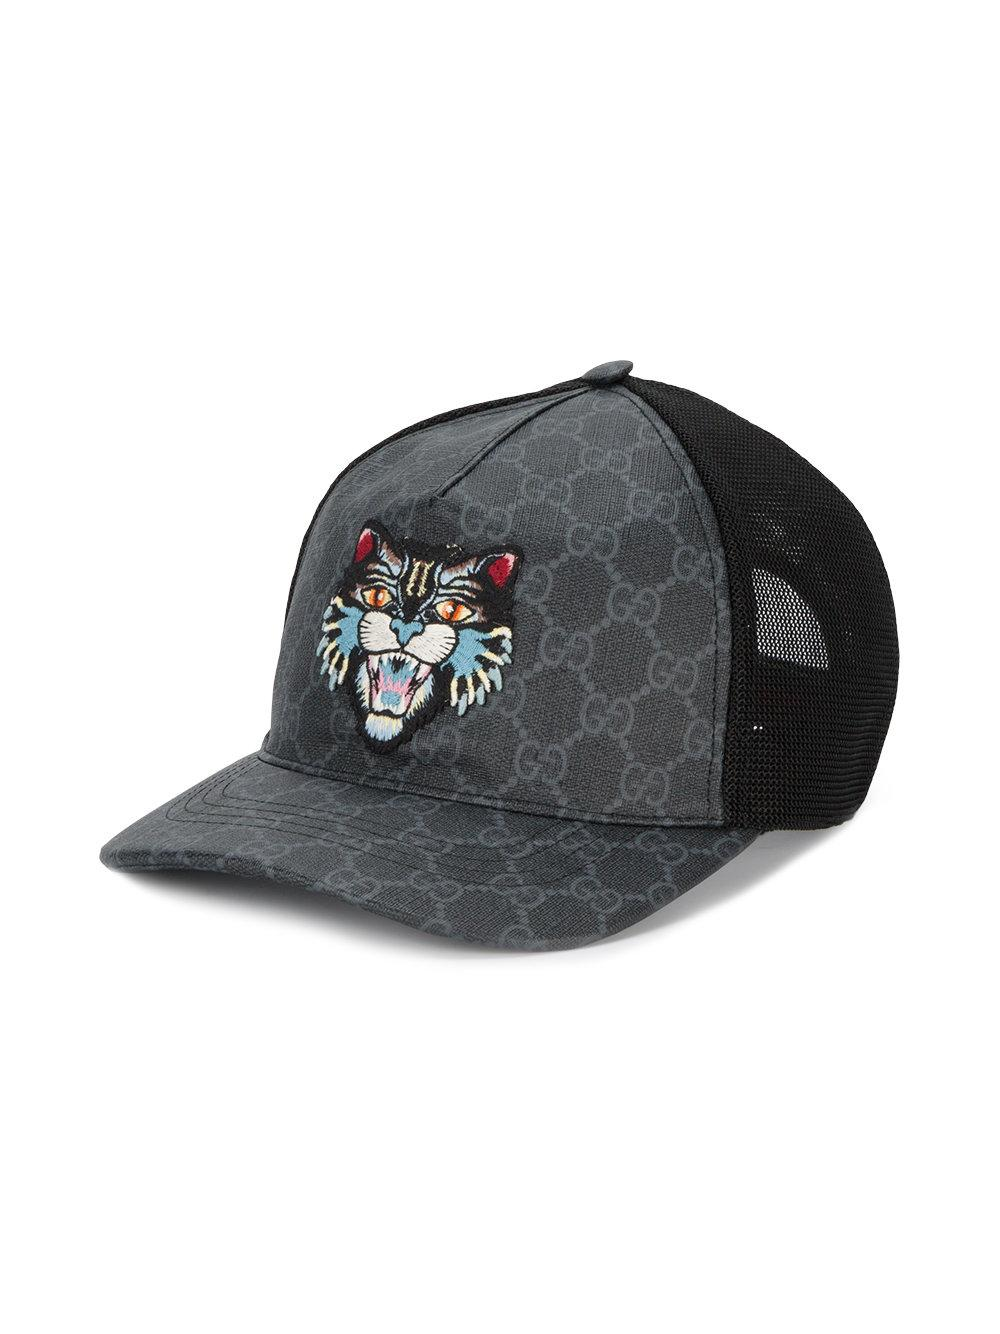 04a6322de17 Lyst - Gucci Gg Supreme Angry Cat Baseball Hat in Black for Men